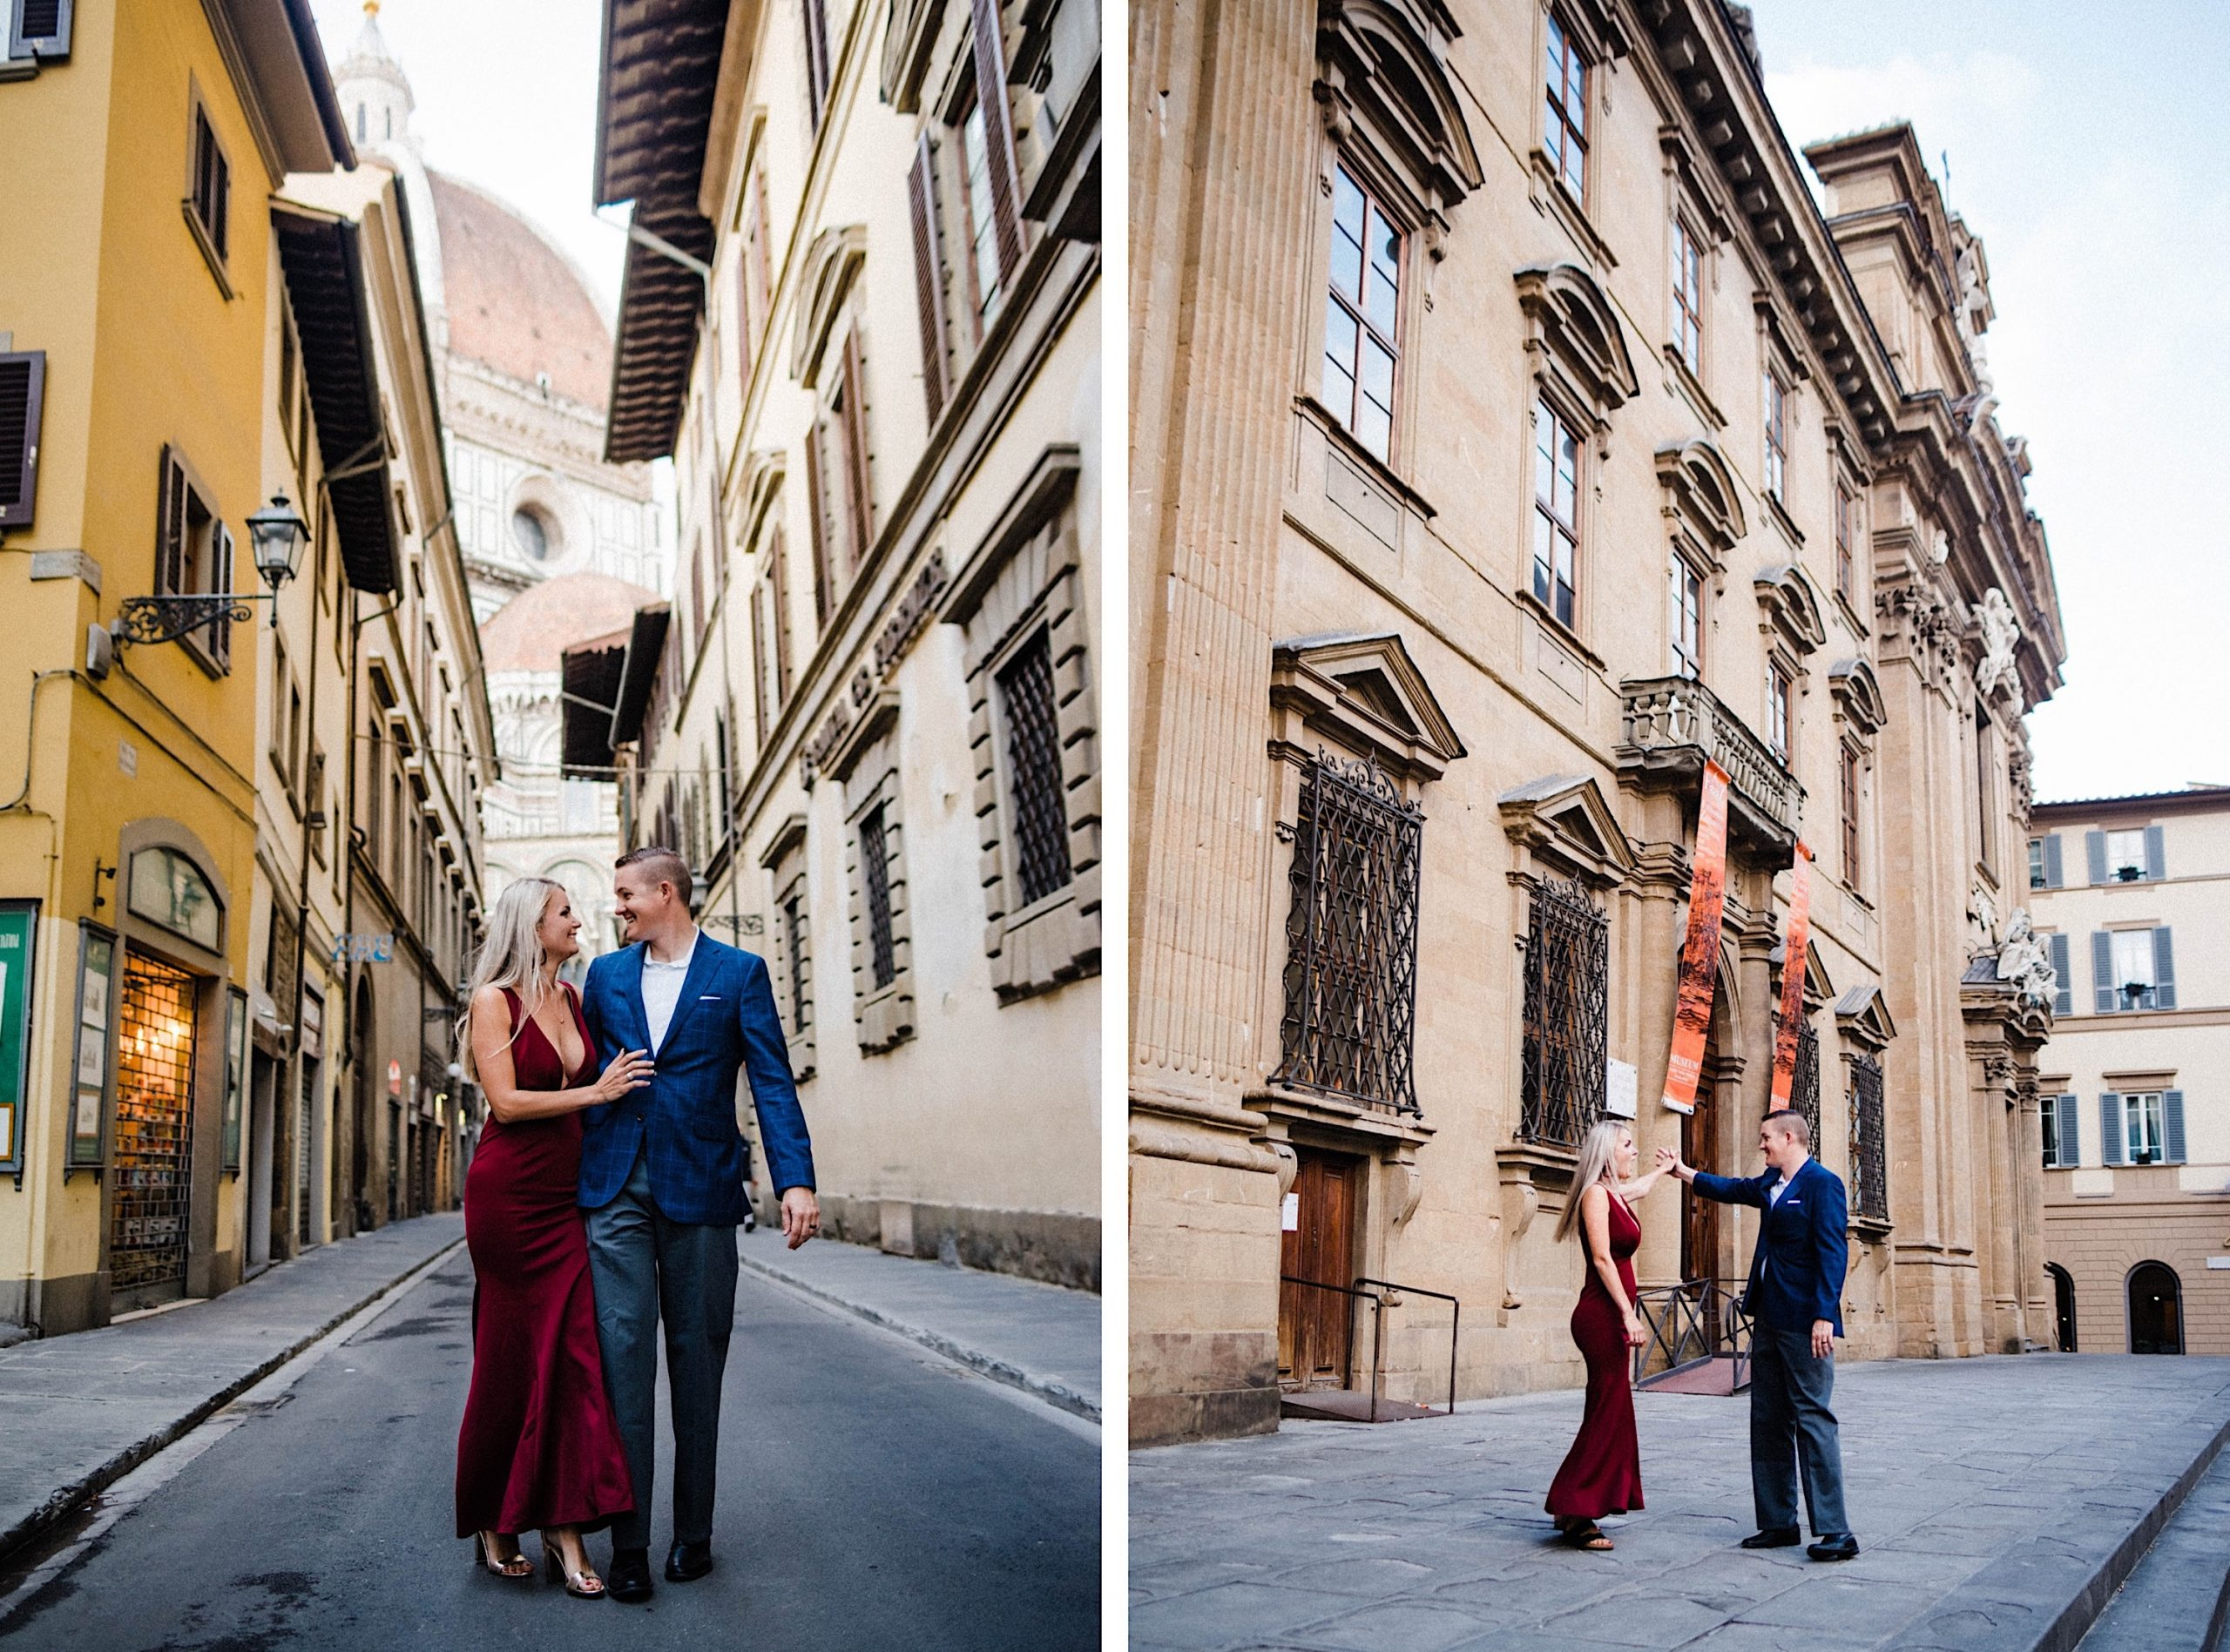 Side-by-side images of a couple walking and dancing through the streets of Florence.